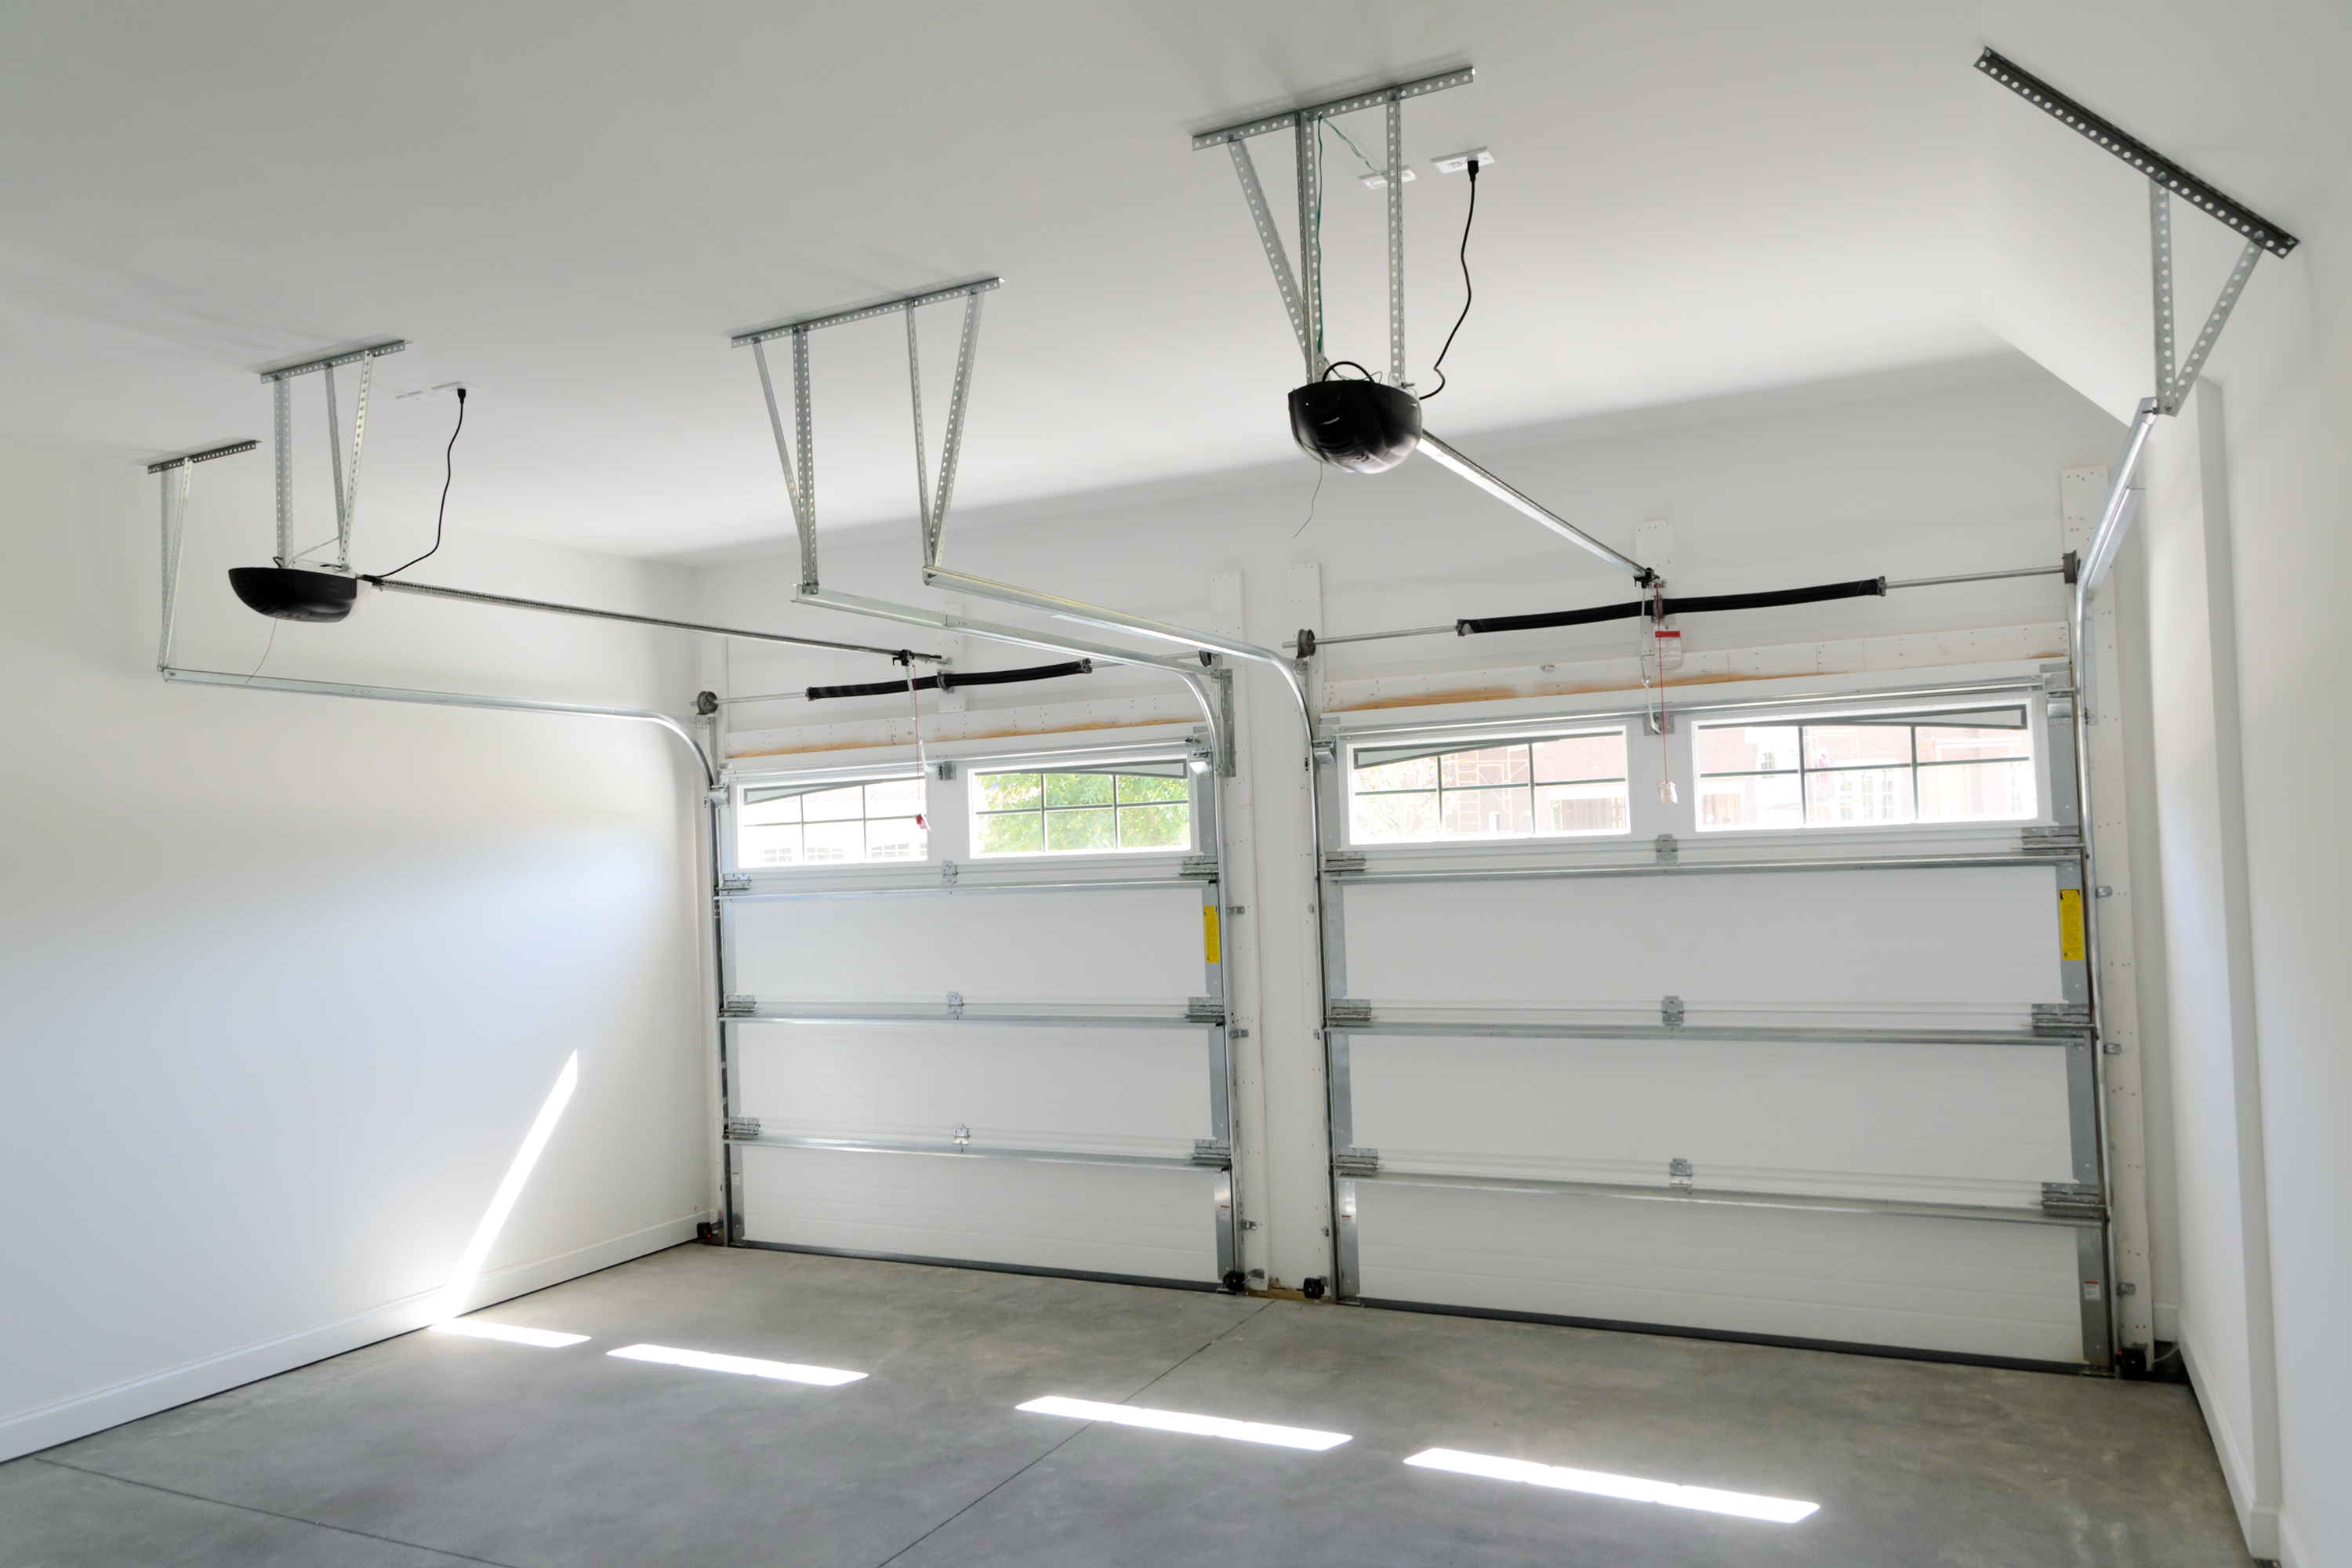 design electrical ideas a heating open how run garage wire attached in collections awesome to walls